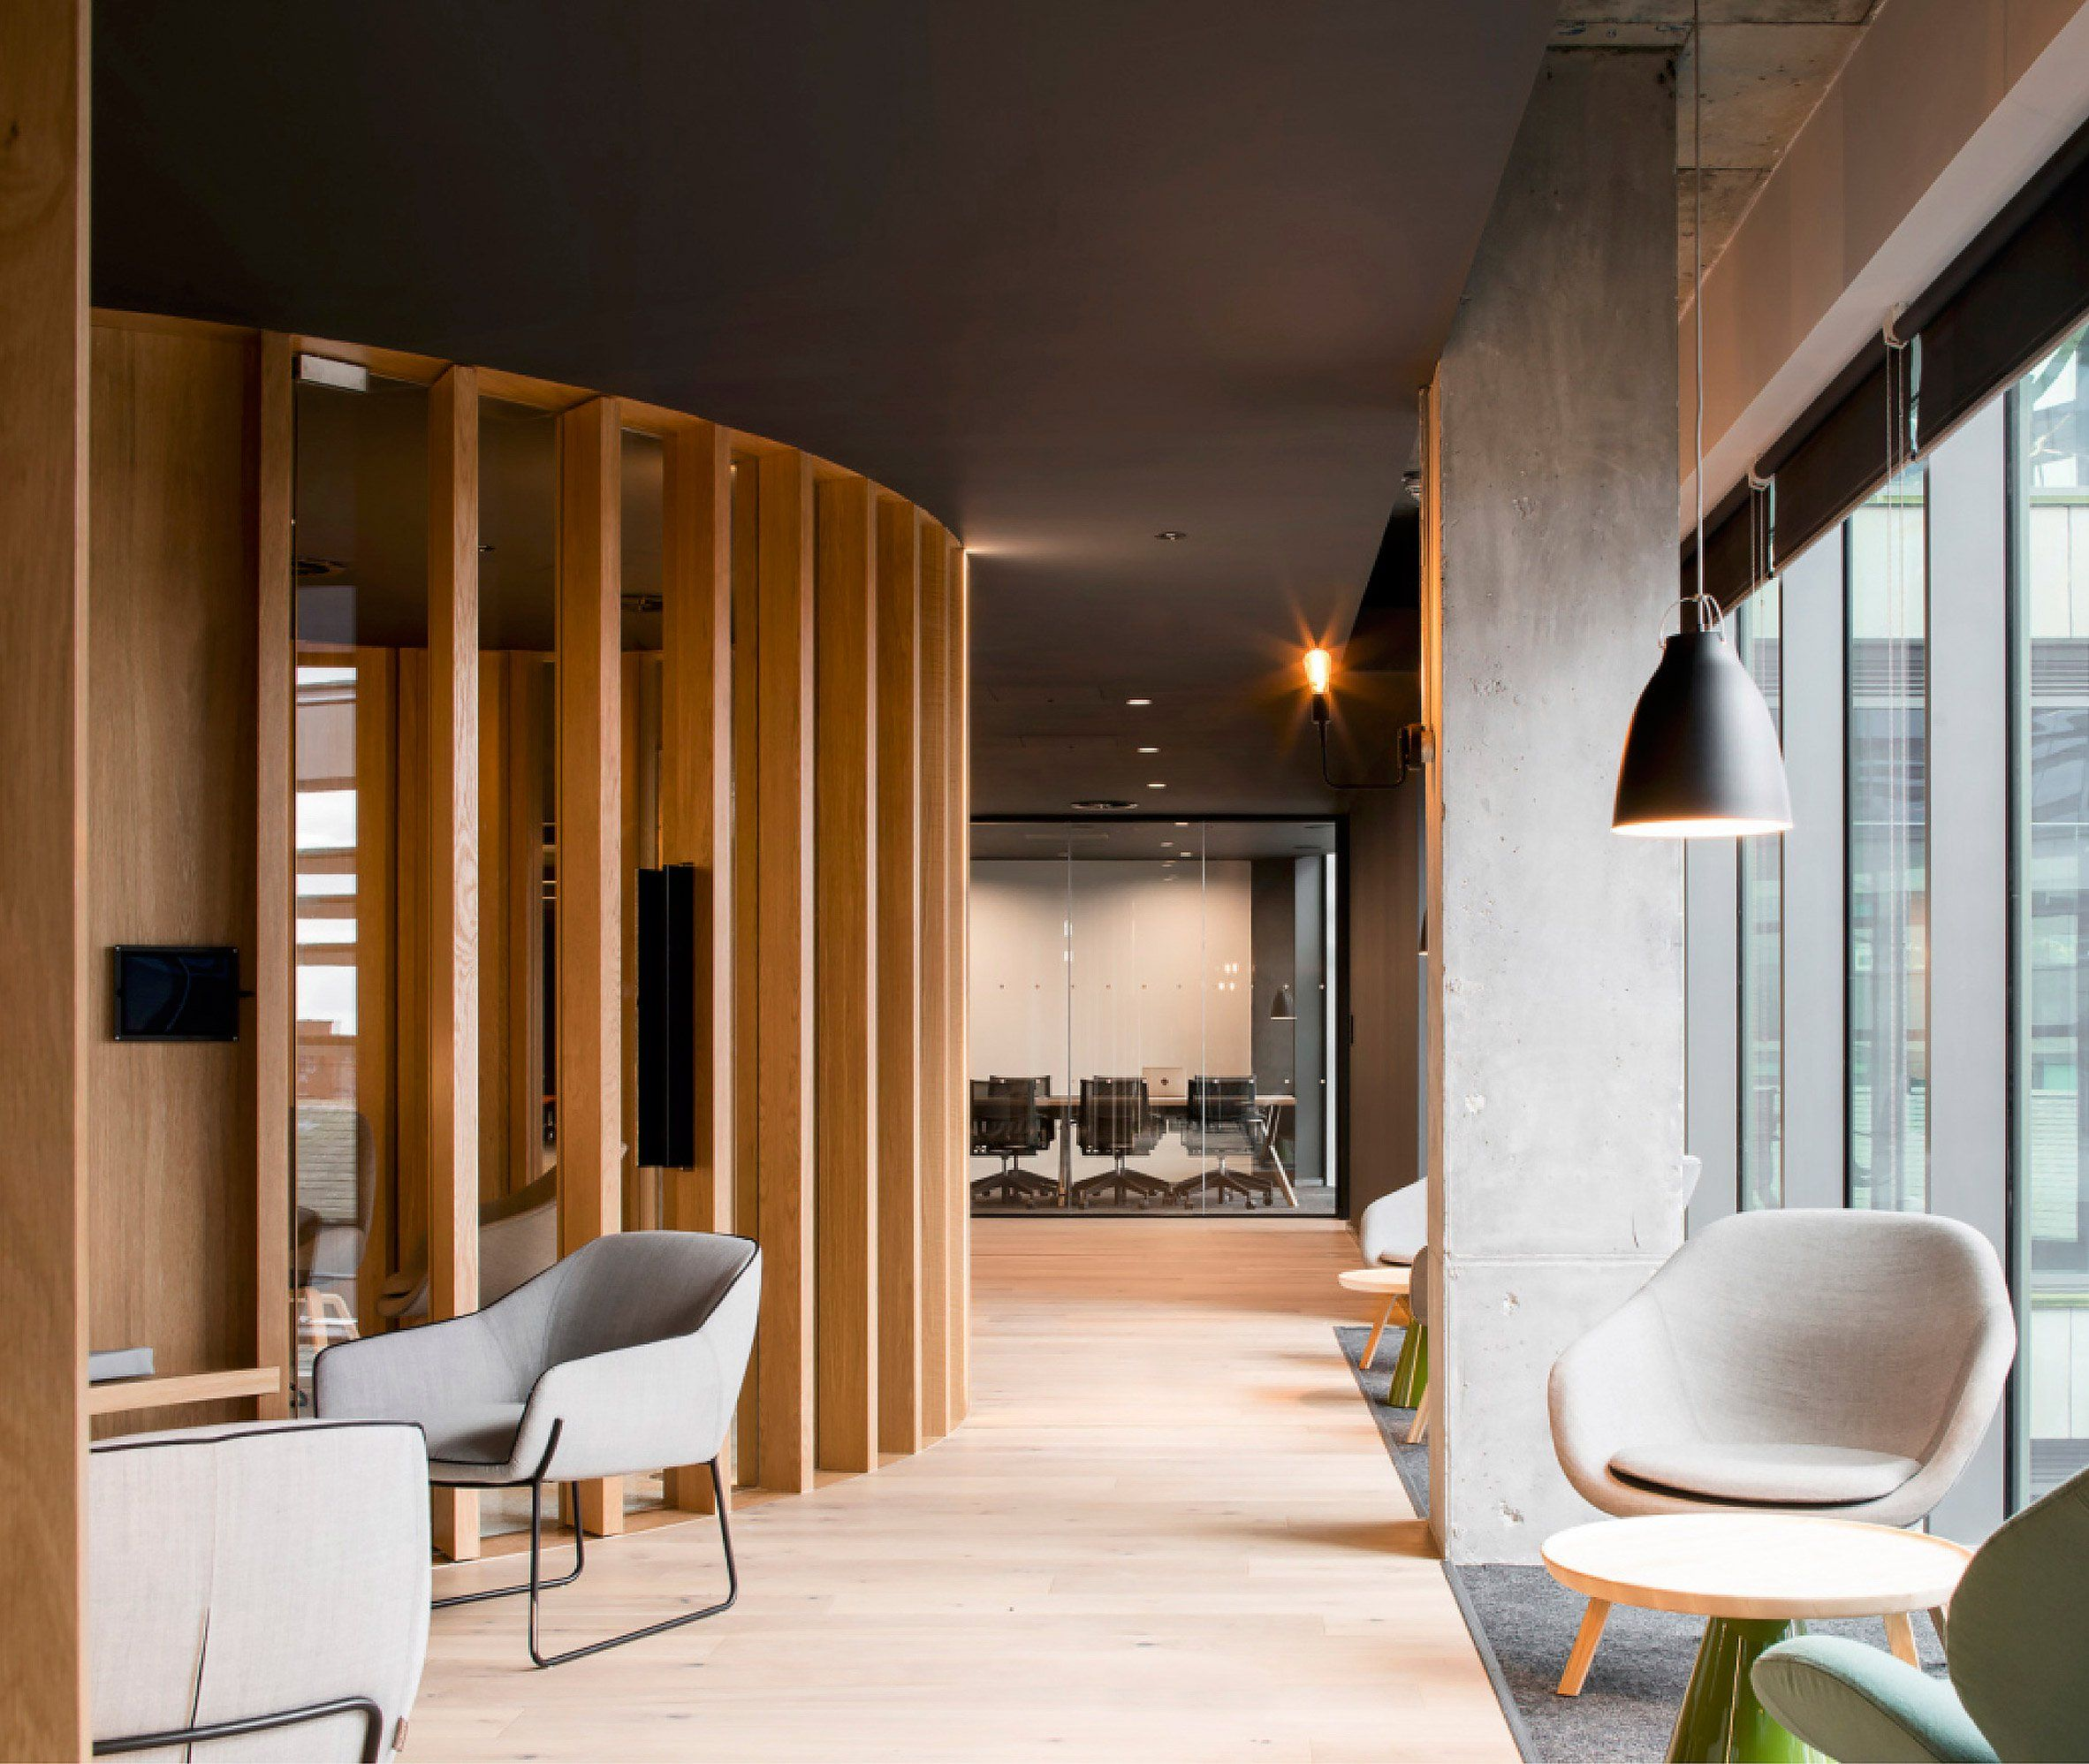 Slack european hq office the san francisco based company opened a dublin office to serve as its european headquarters in 2015 but soon outgrew its original